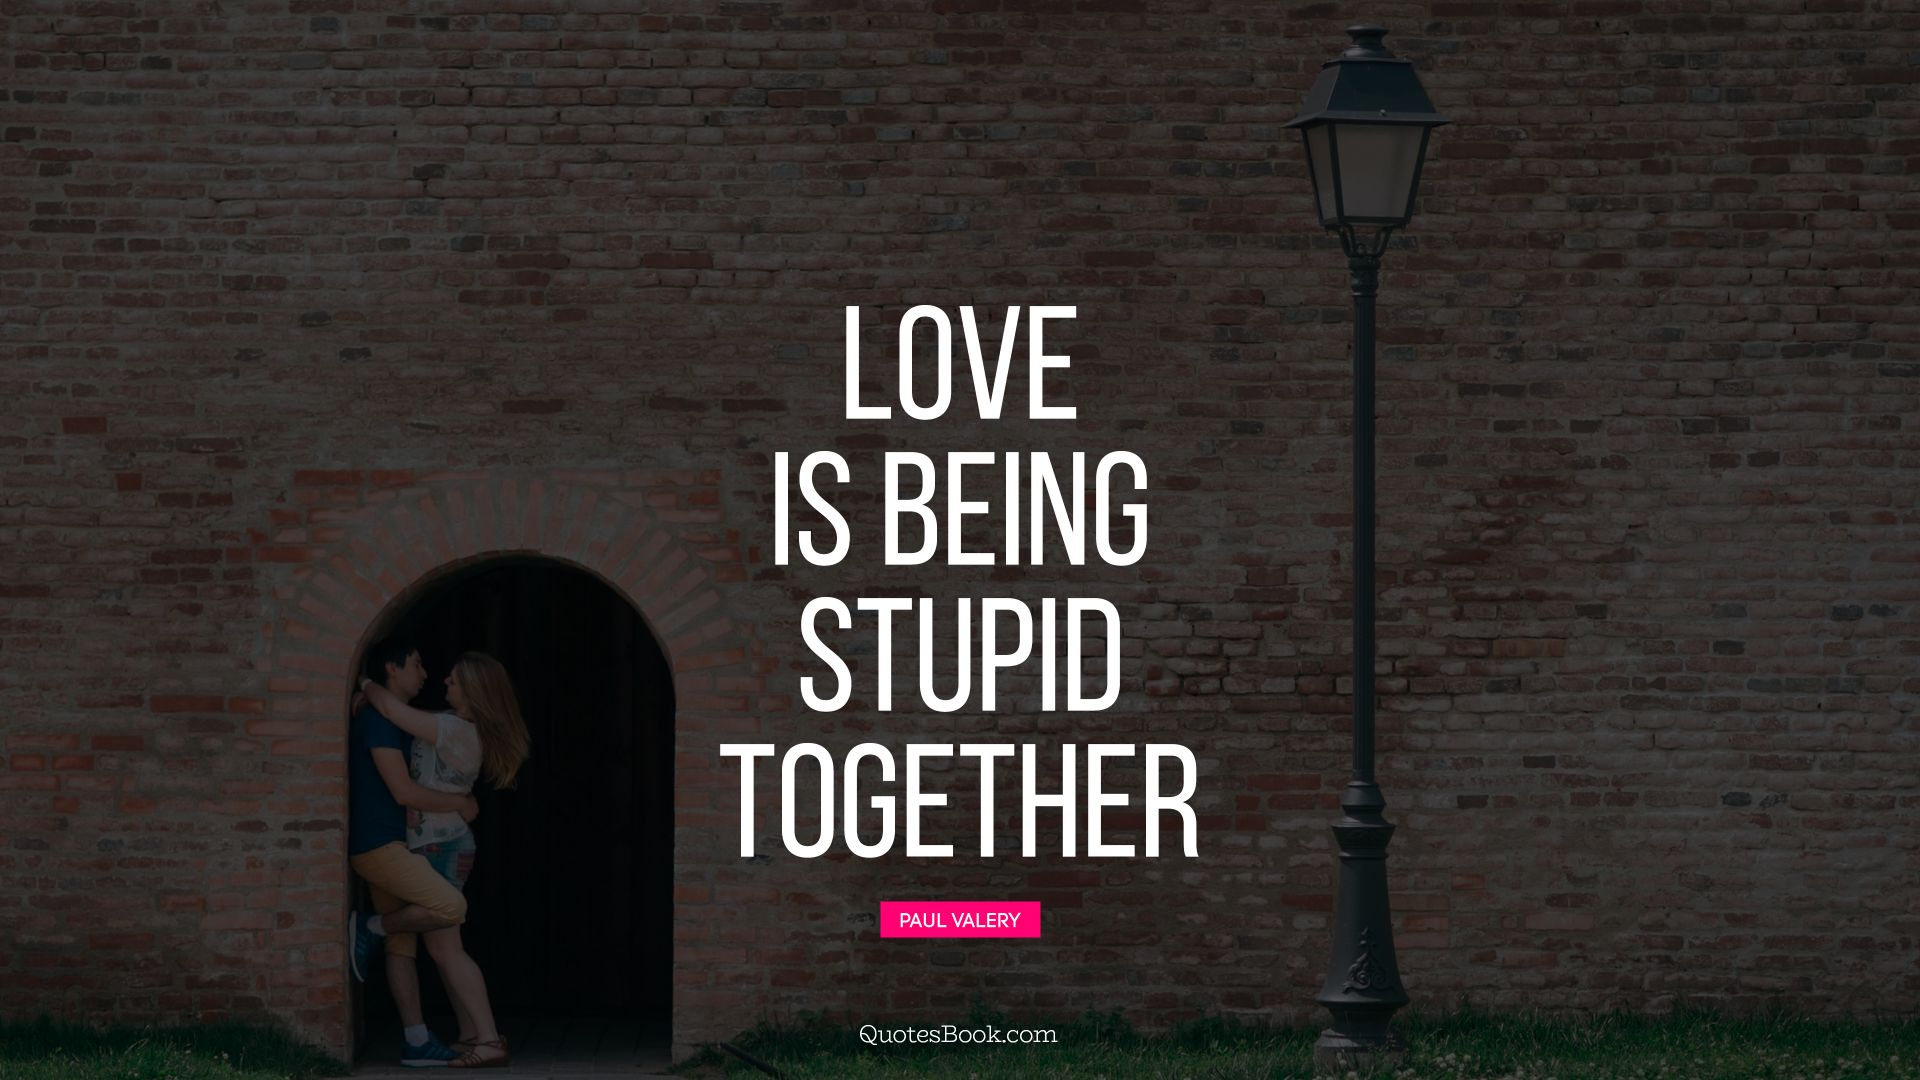 Love is being stupid together. - Quote by Paul Valery